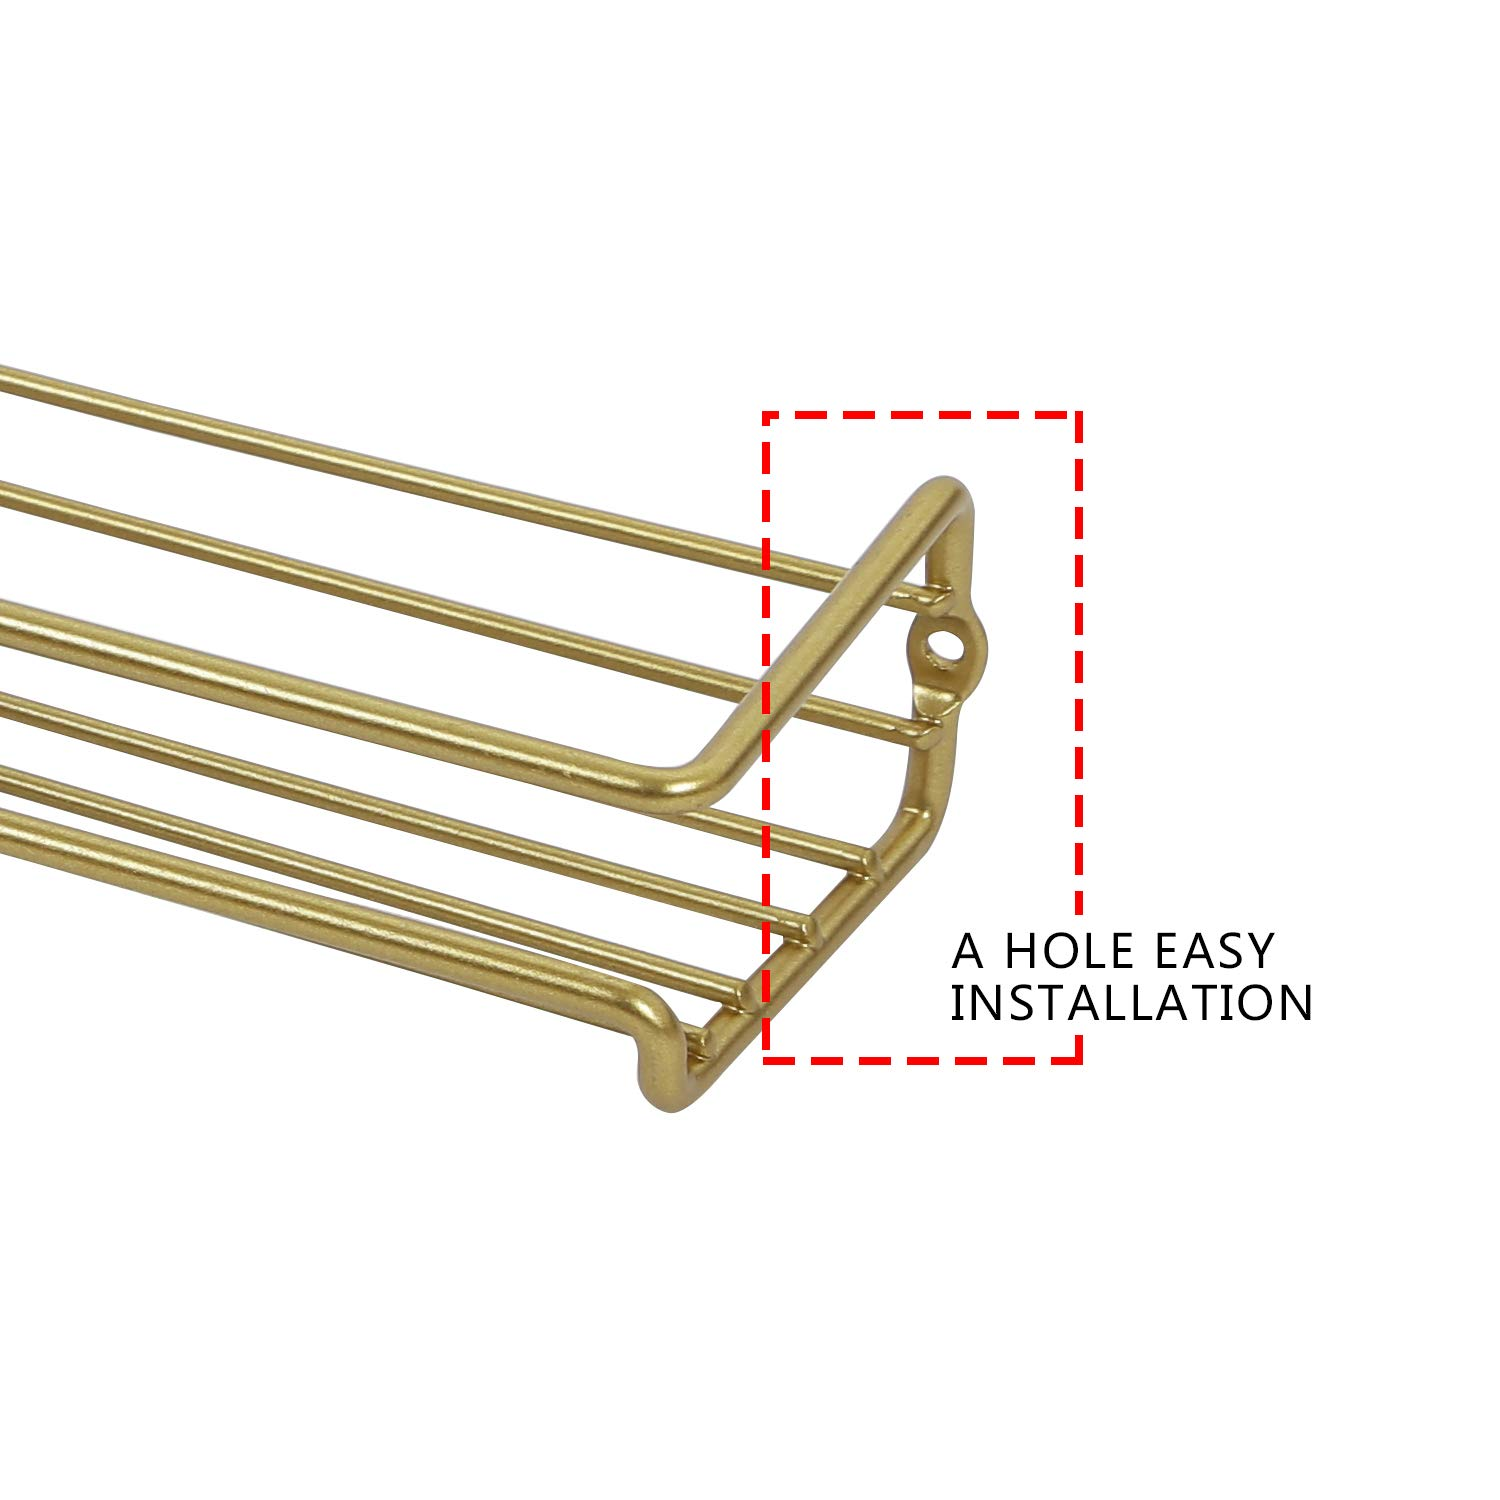 Hanging Racks for Cabinet or Pantry Door Under Cabinet Metal Champagne Gold Color Asense 4 Pack Wall Mount Hanging Single Tier Spice Racks Organizers